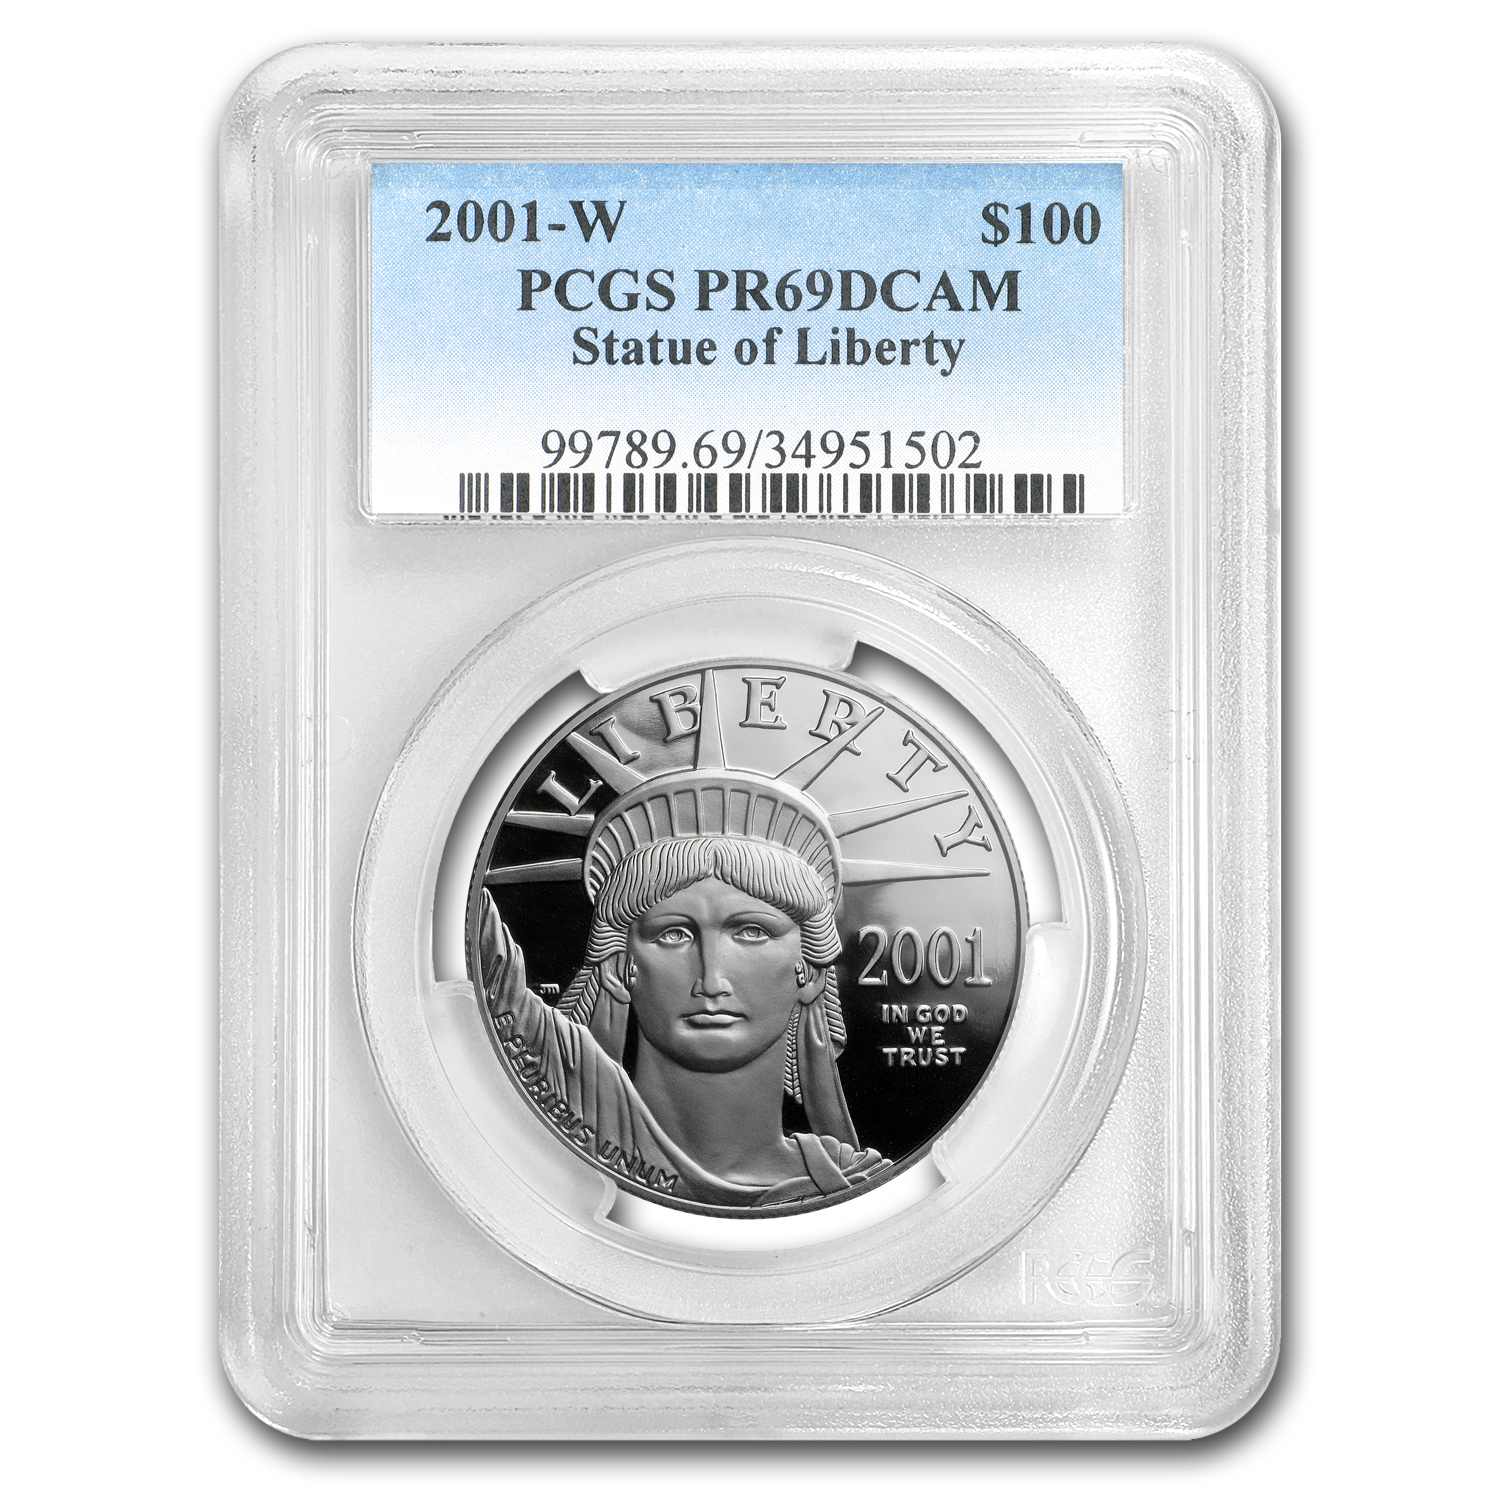 2001-W 1 oz Proof Platinum American Eagle PR-69 PCGS